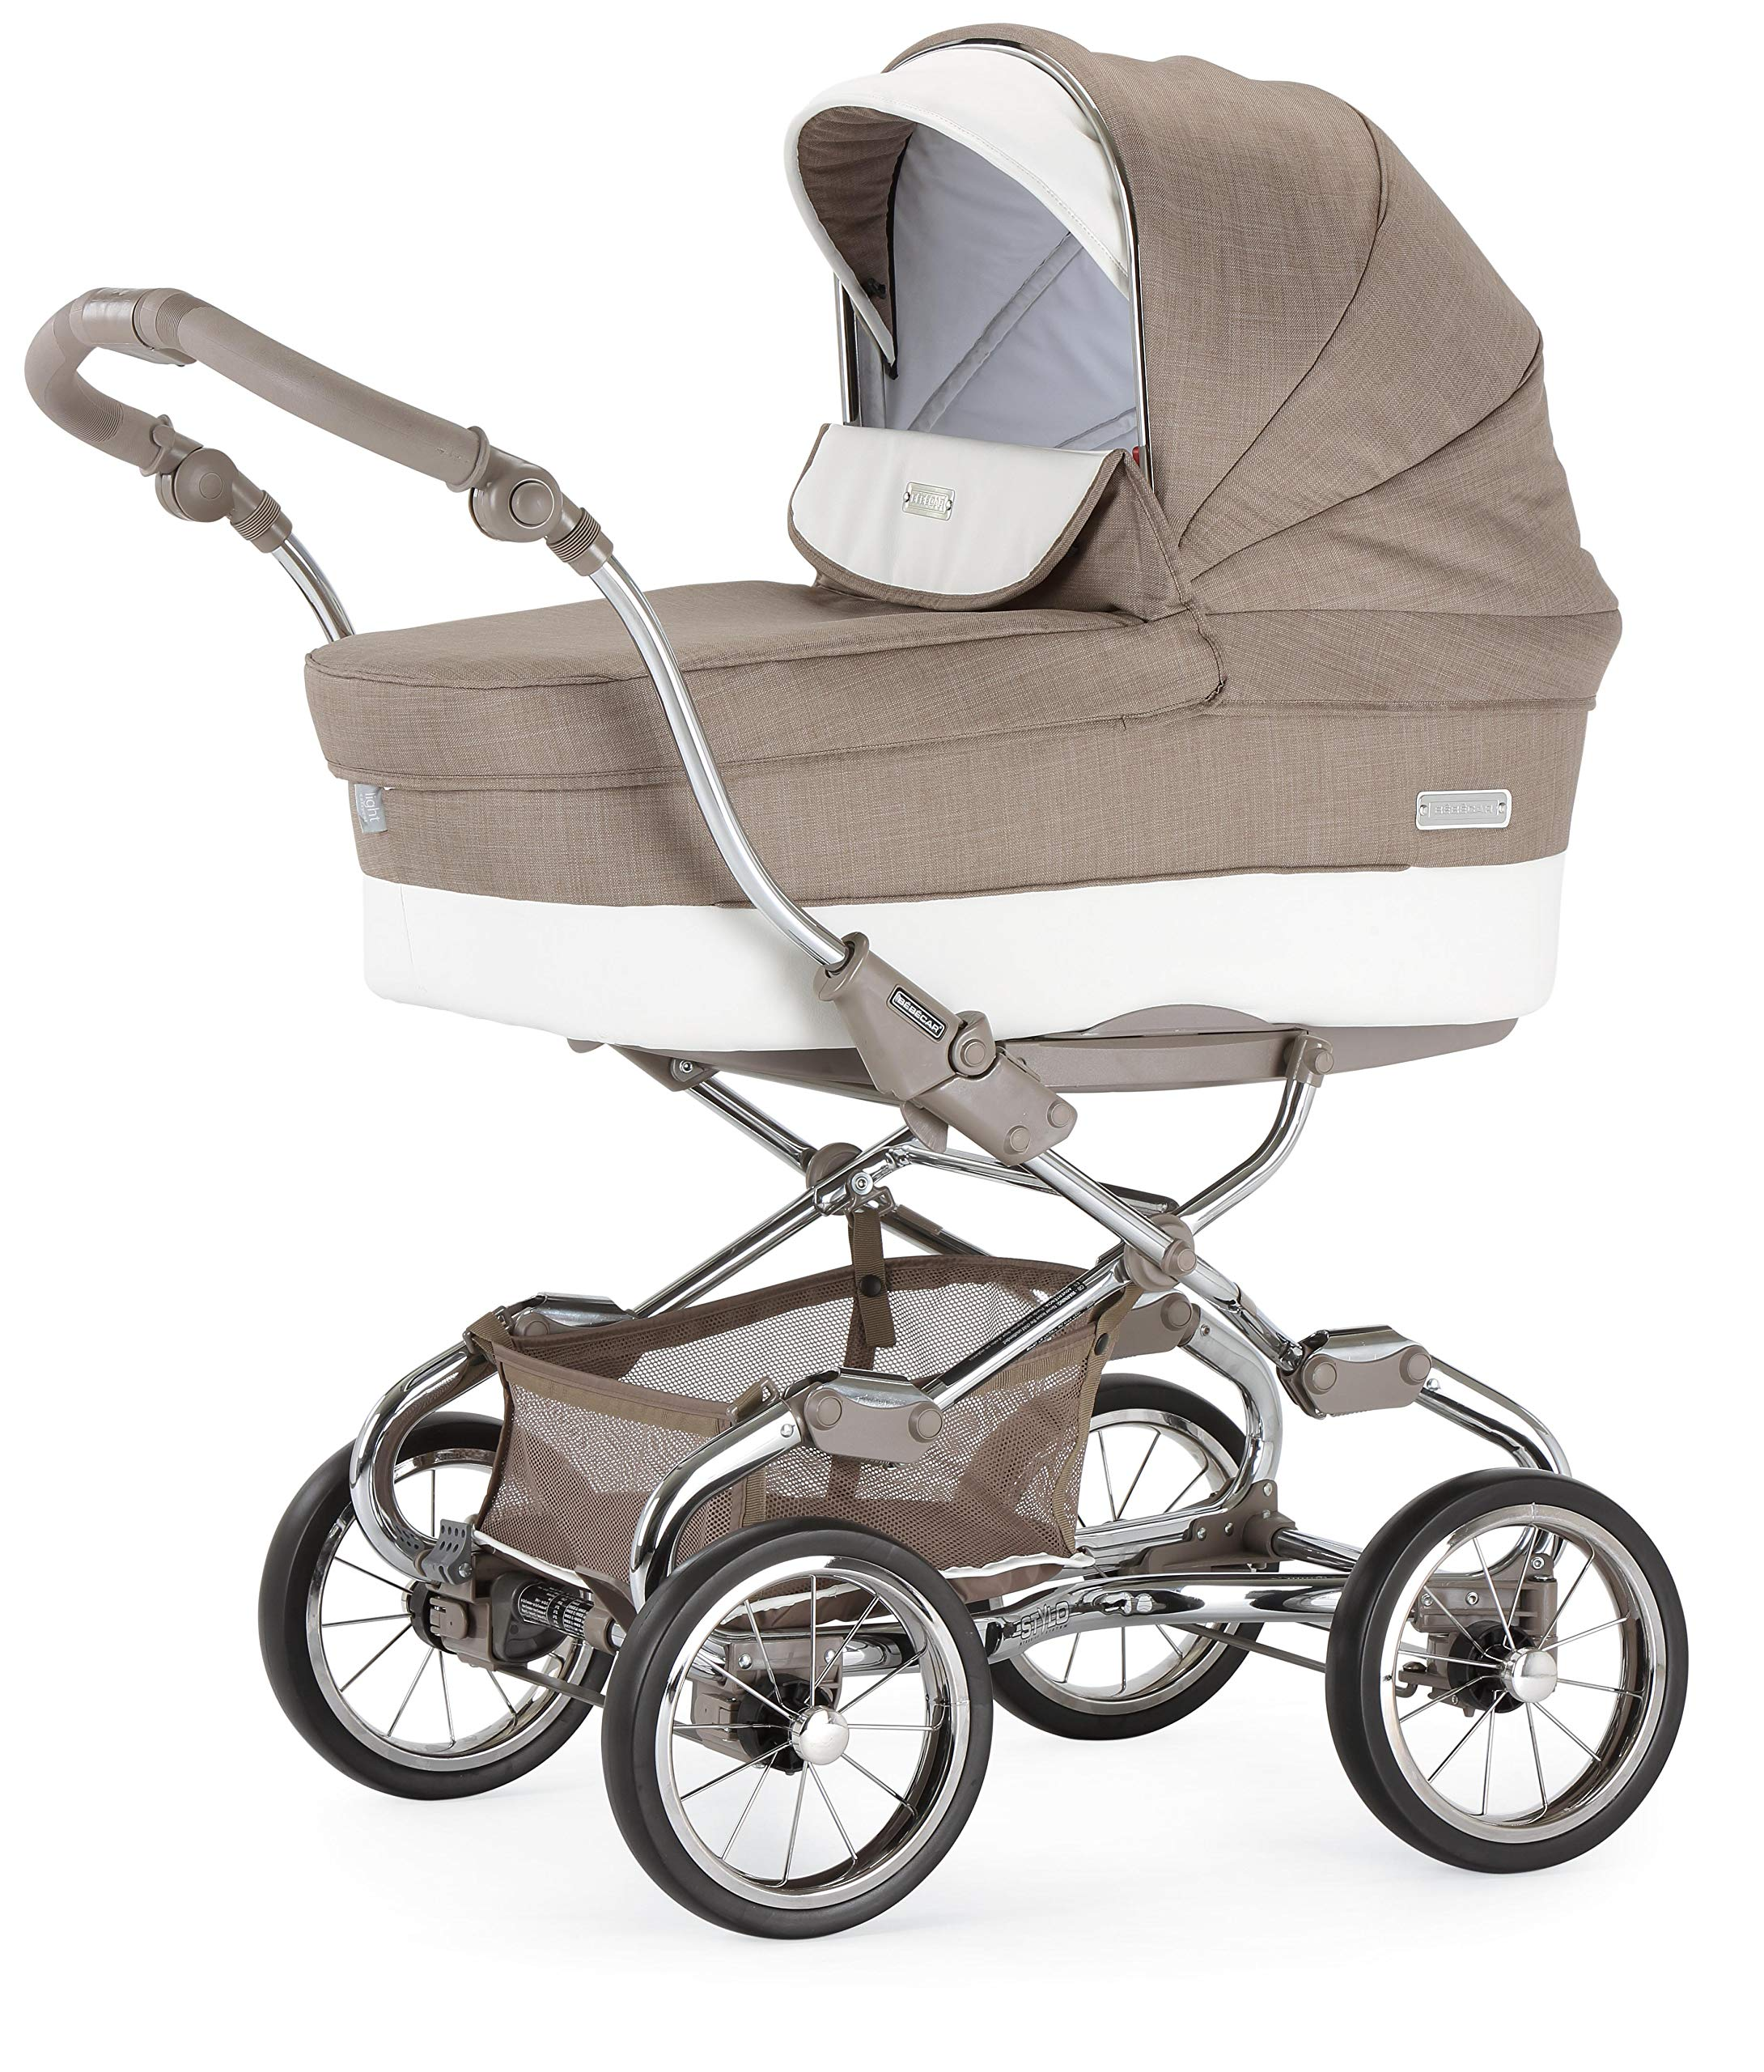 Bebecar Stylo Class XL Travel System Pack in Topo - Includes Puschair, Carrycot & Eazymax Seat Bebecar Assembled- 57cm(W) x 101cm(H) x 102cm(D) Folded- 57cm(W) x 41cm(H) x 82cm(D) Weight- 11.1kg 1